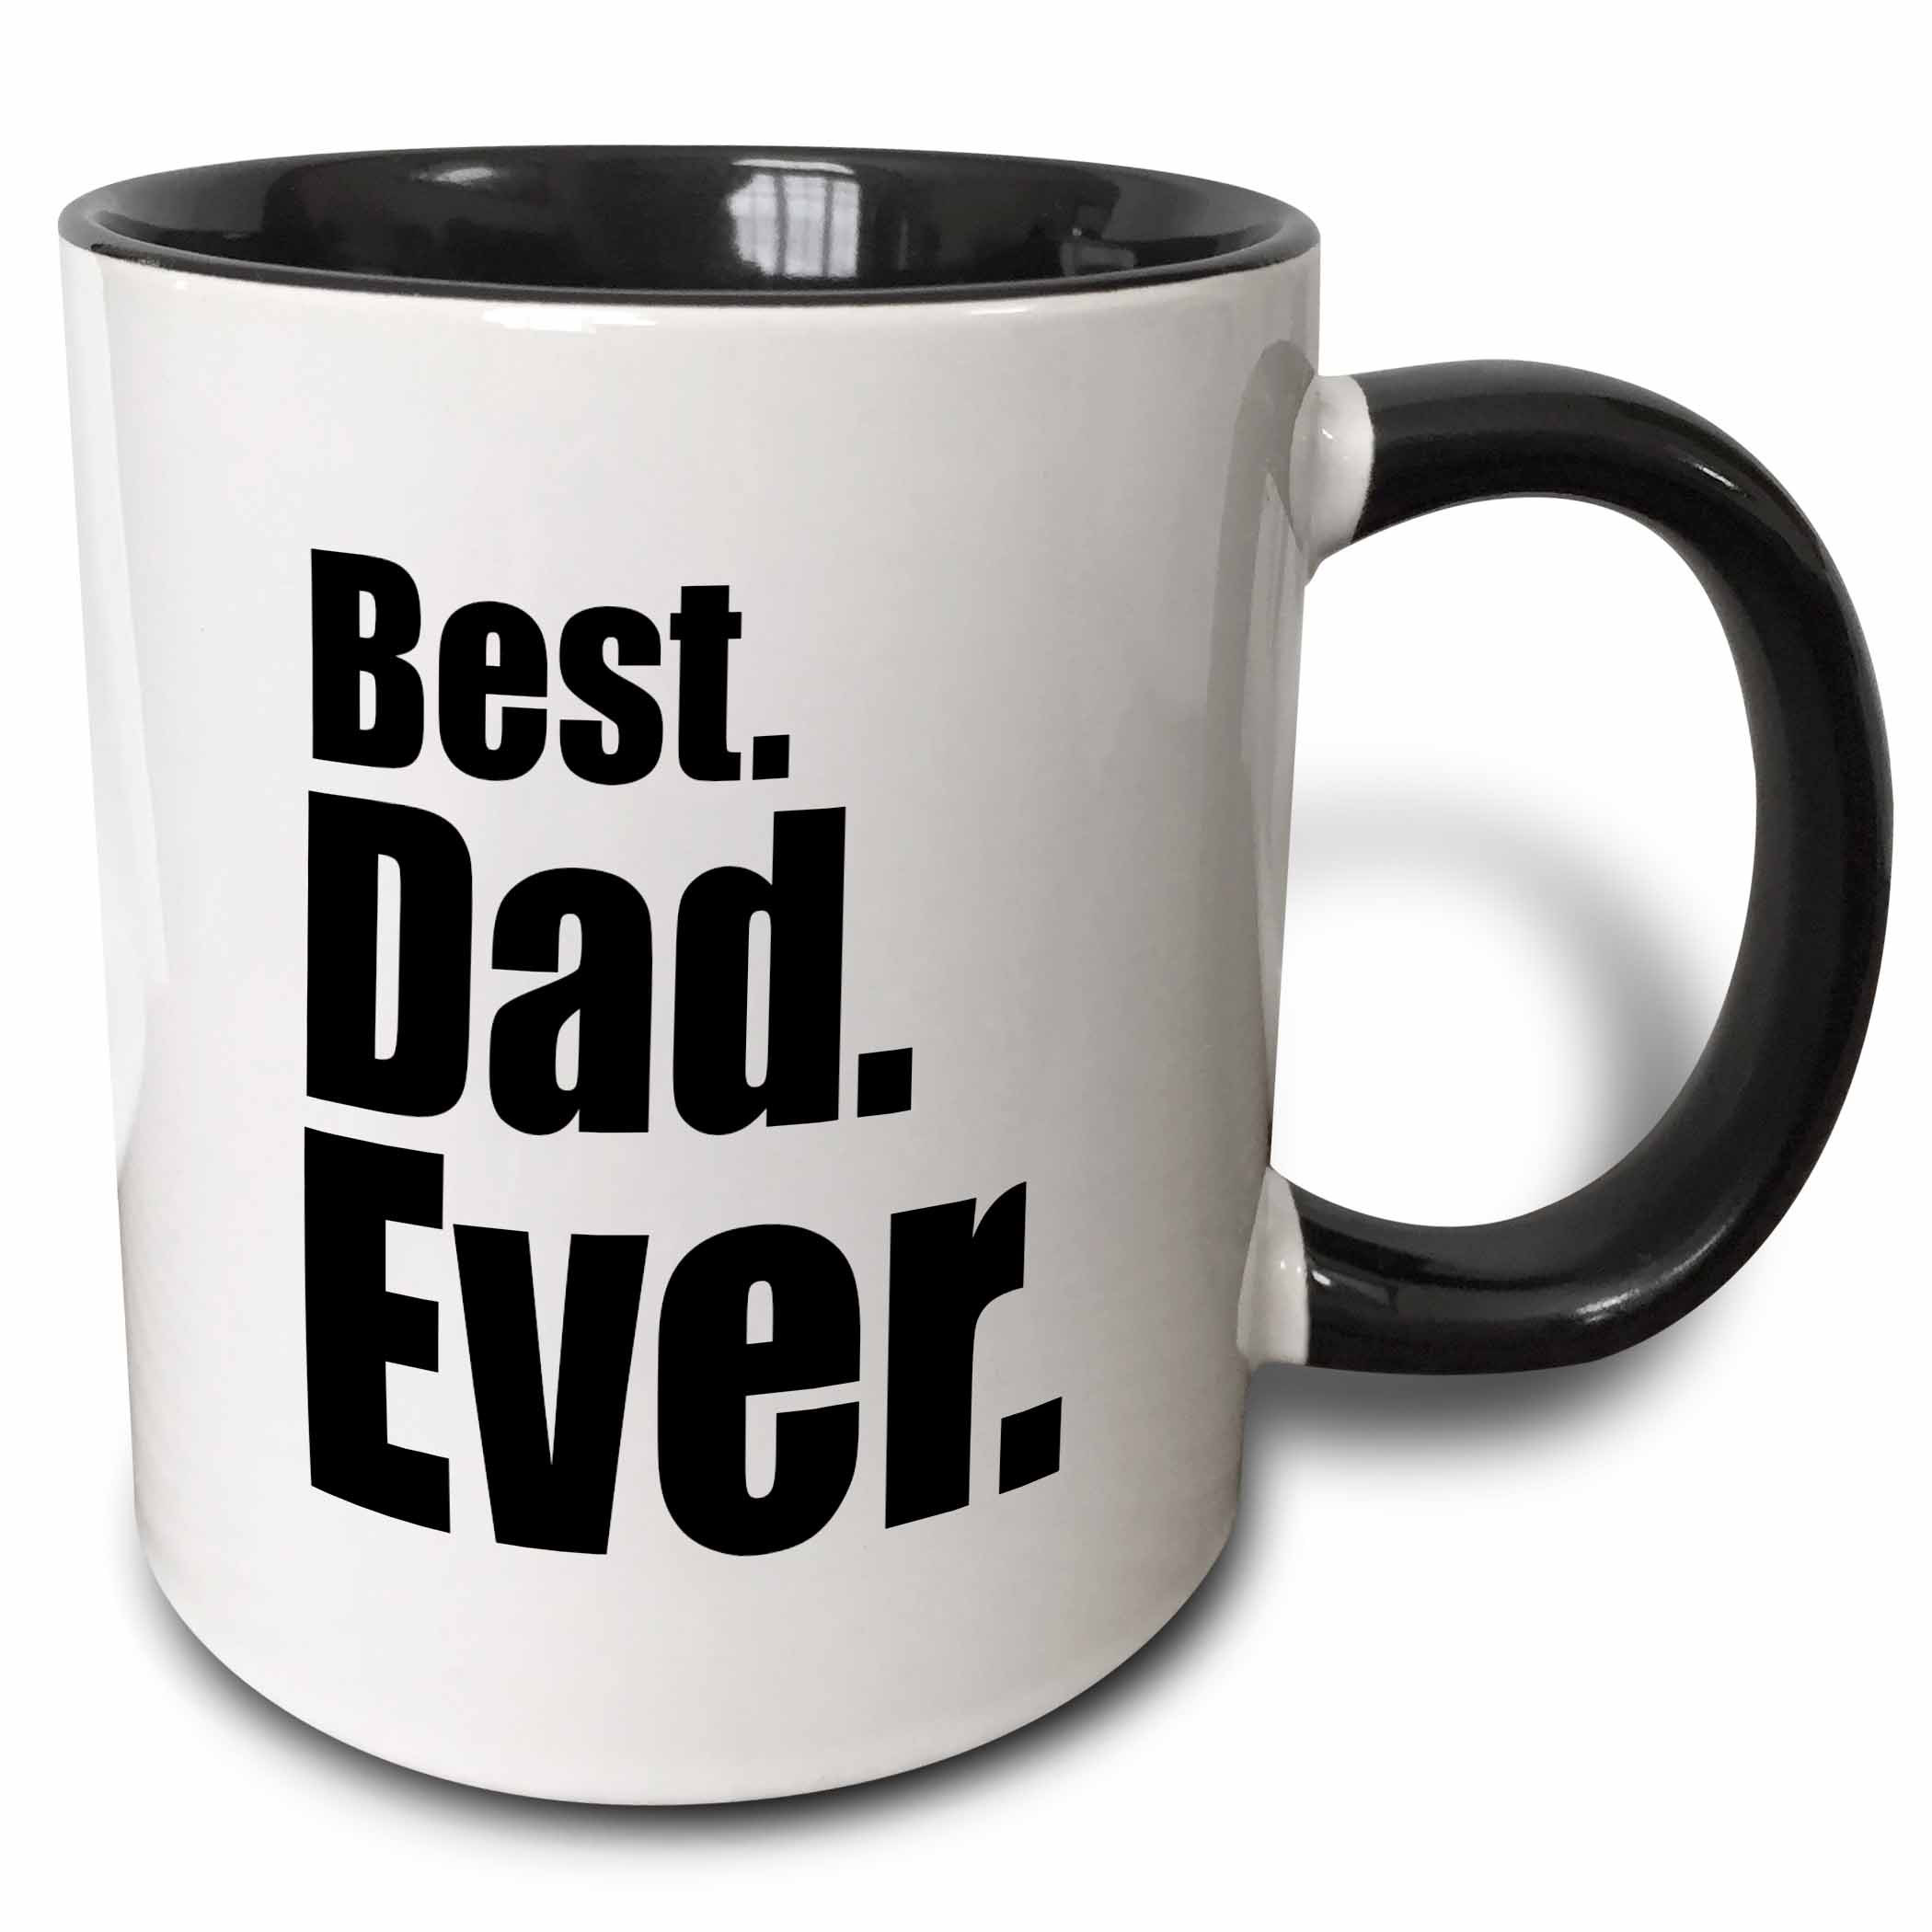 3dRose Best Dad Ever Two Tone Black Mug, 11-ounce by 3dRose